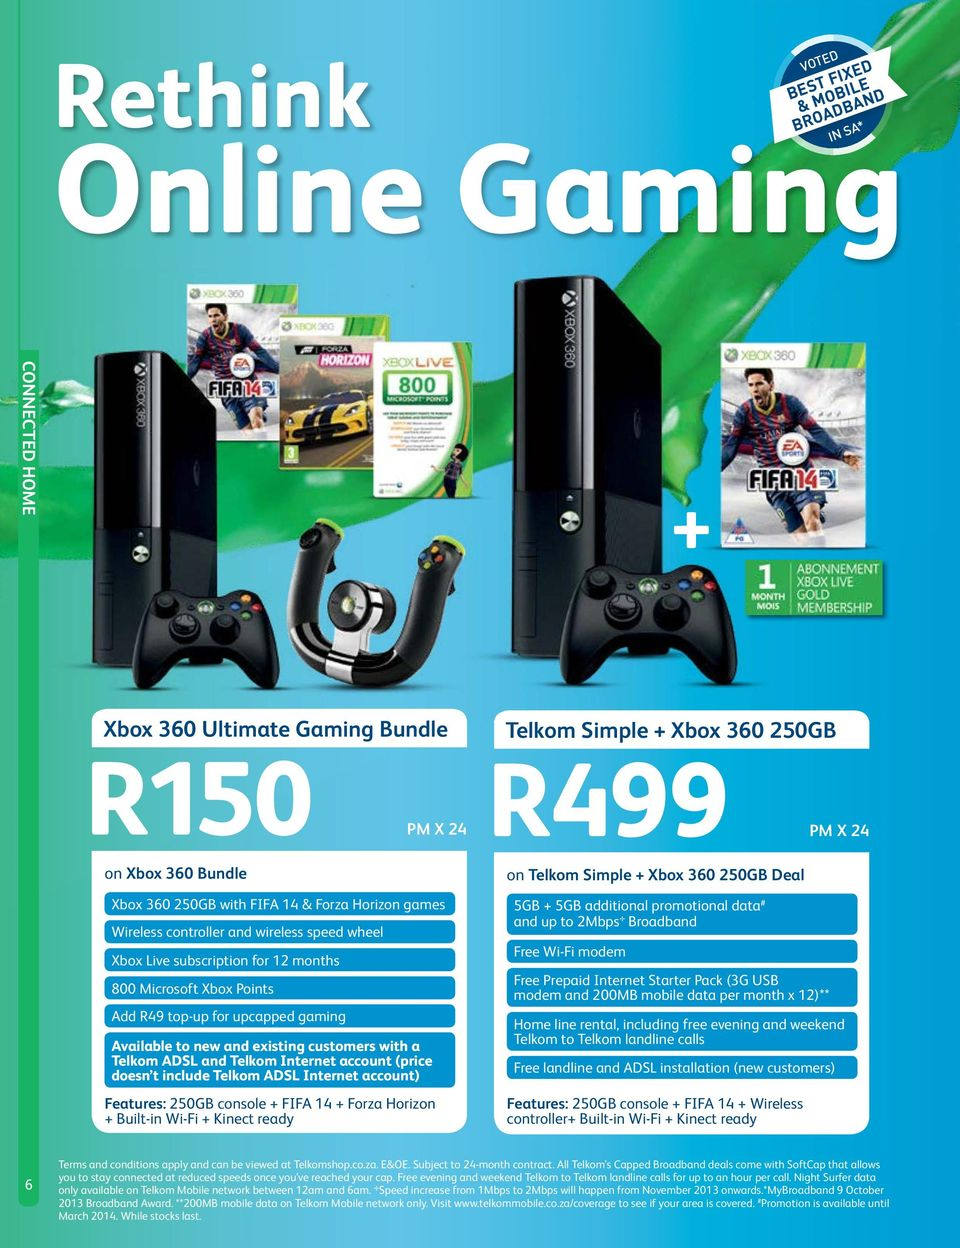 Connected Home Turn Your Into A Wi Fi Hotspot Page 3 6 Mobile Hdd Carrier Welcome To Valhalla Inside The New 250gb Xbox 360 Slim With Telkom Adsl And Internet Account Price Doesn T Include